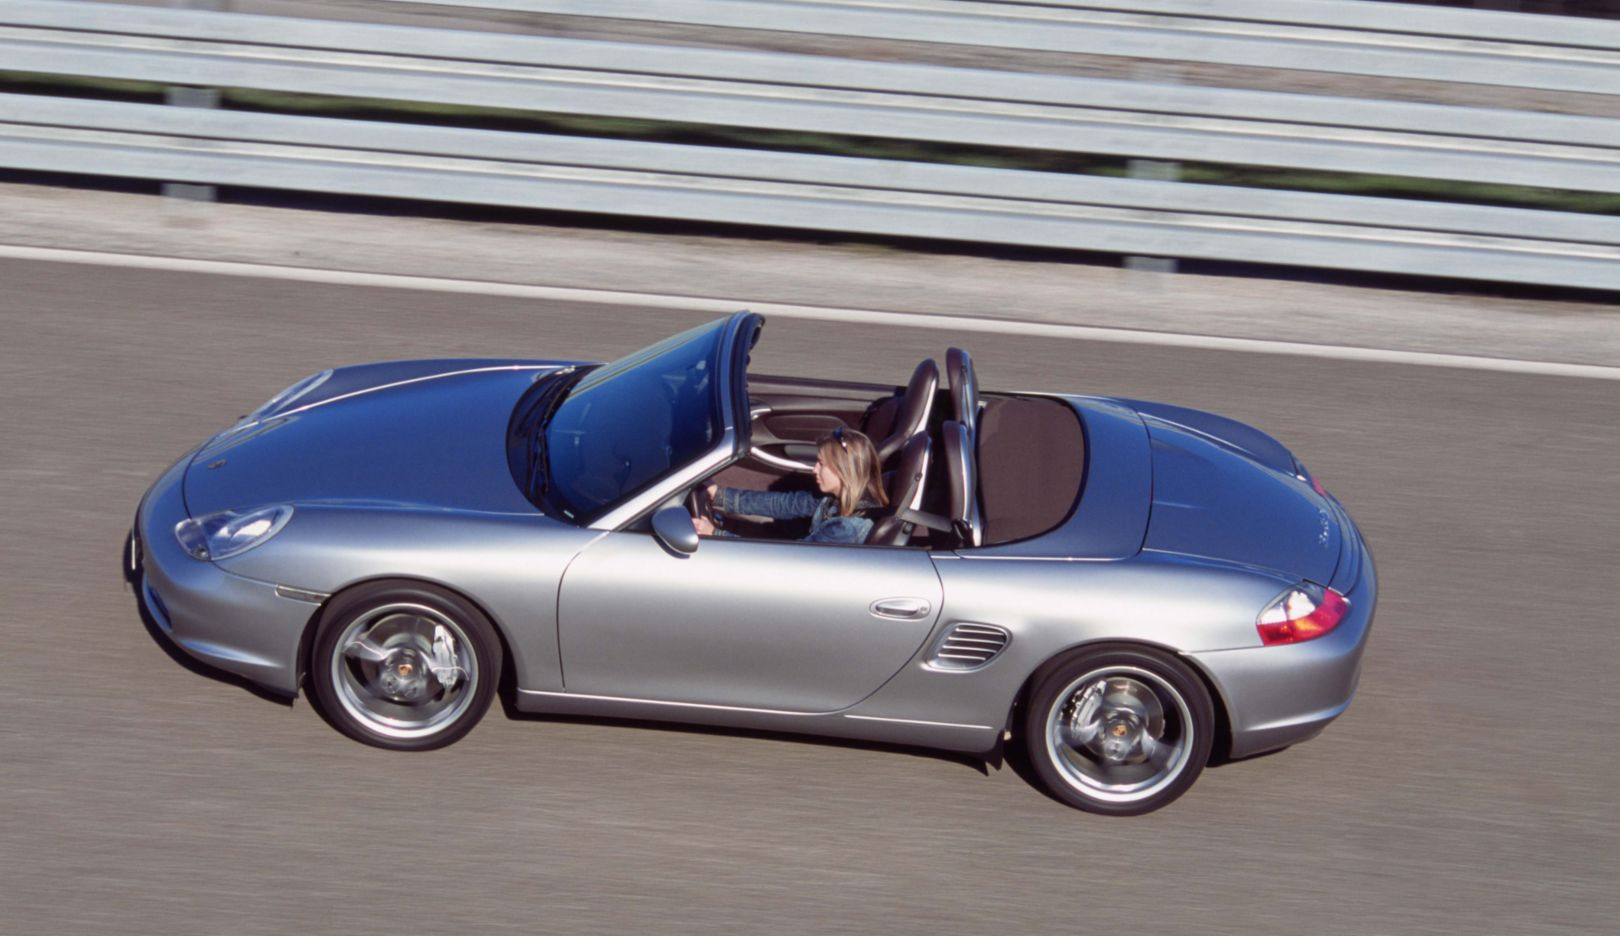 986 generation: 50 years of the 550 Spyder special edition (2004). The Boxster S special edition evokes its kinship to the 550 Spyder. Its body lines and timeless elegance are reminiscent of the first thoroughbred Porsche race car.